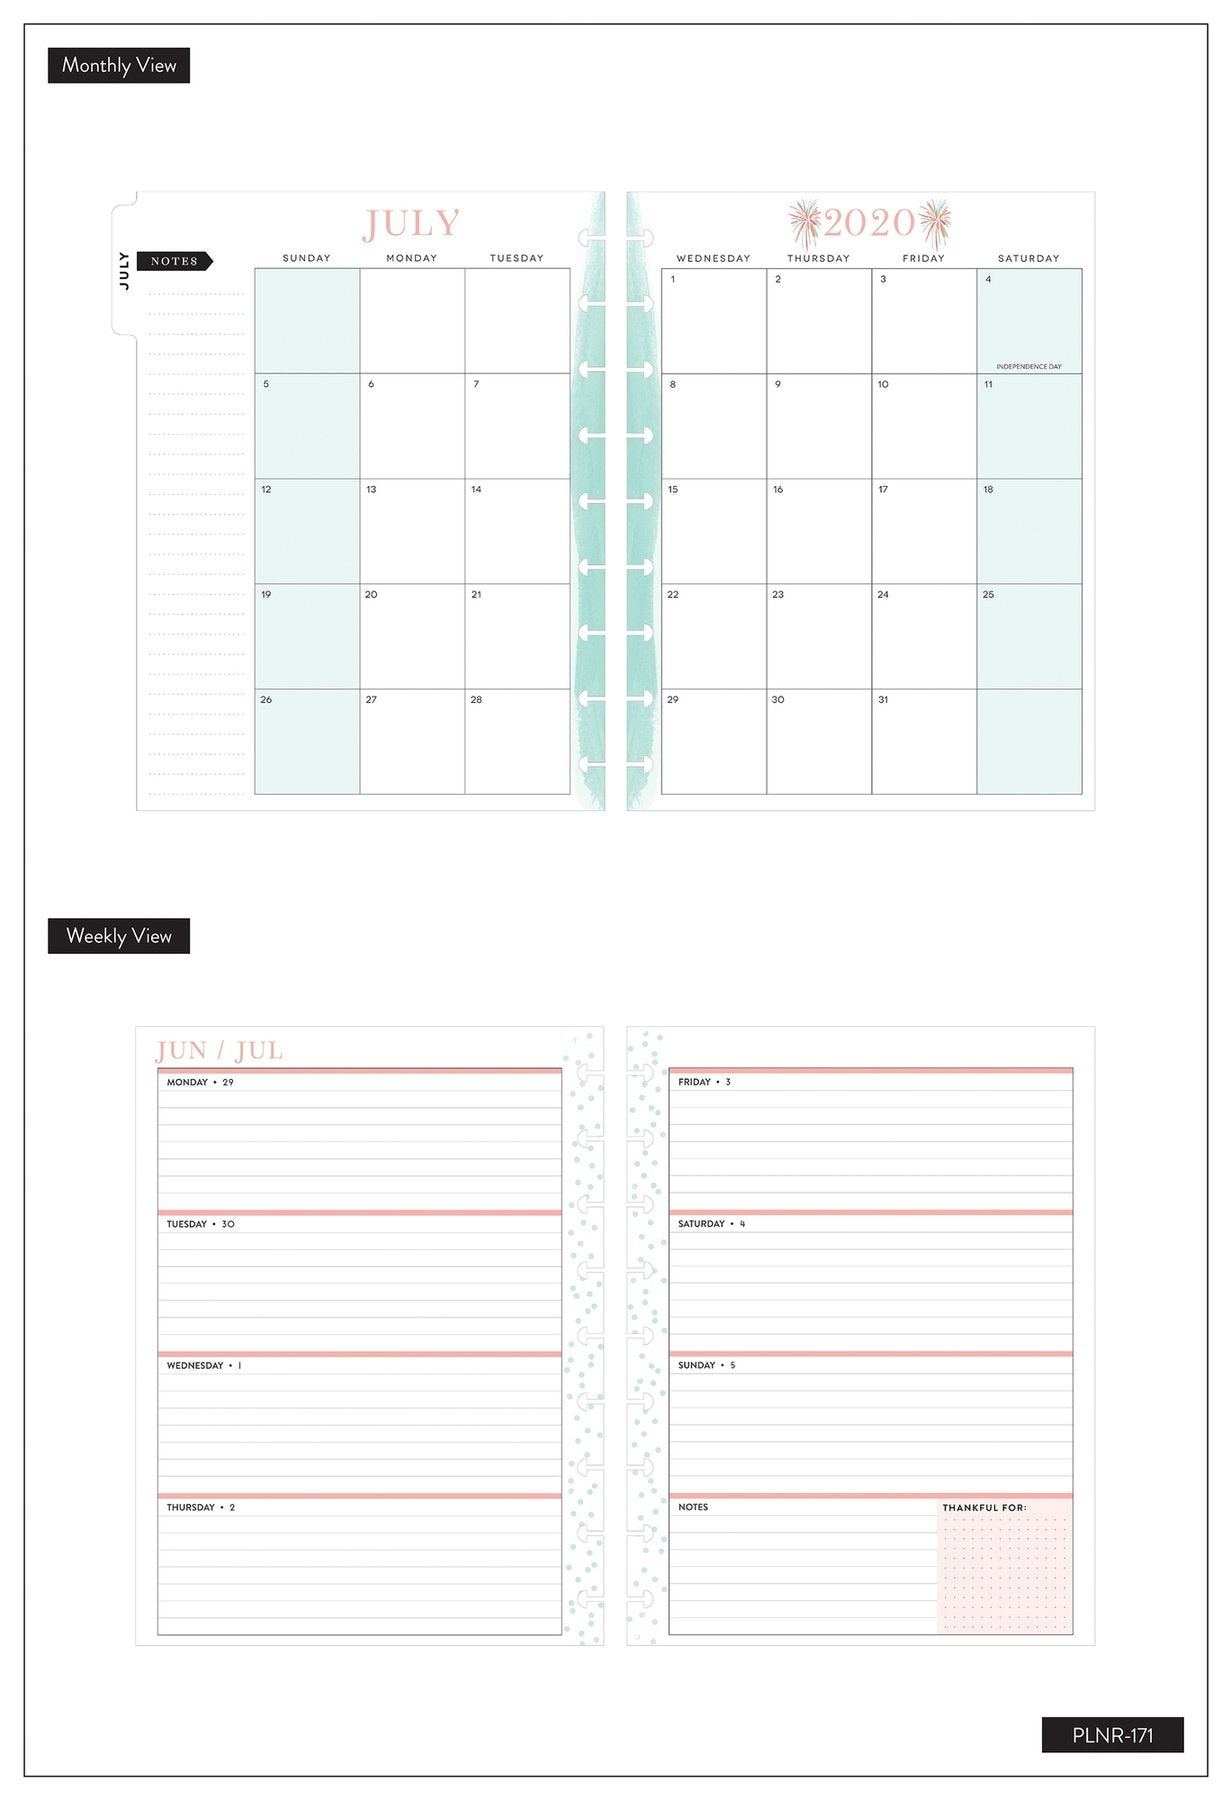 Agenda Happy Planner Clásica Horizontal - Rongrong Babes Support Babes - 18 Meses 2020-2021